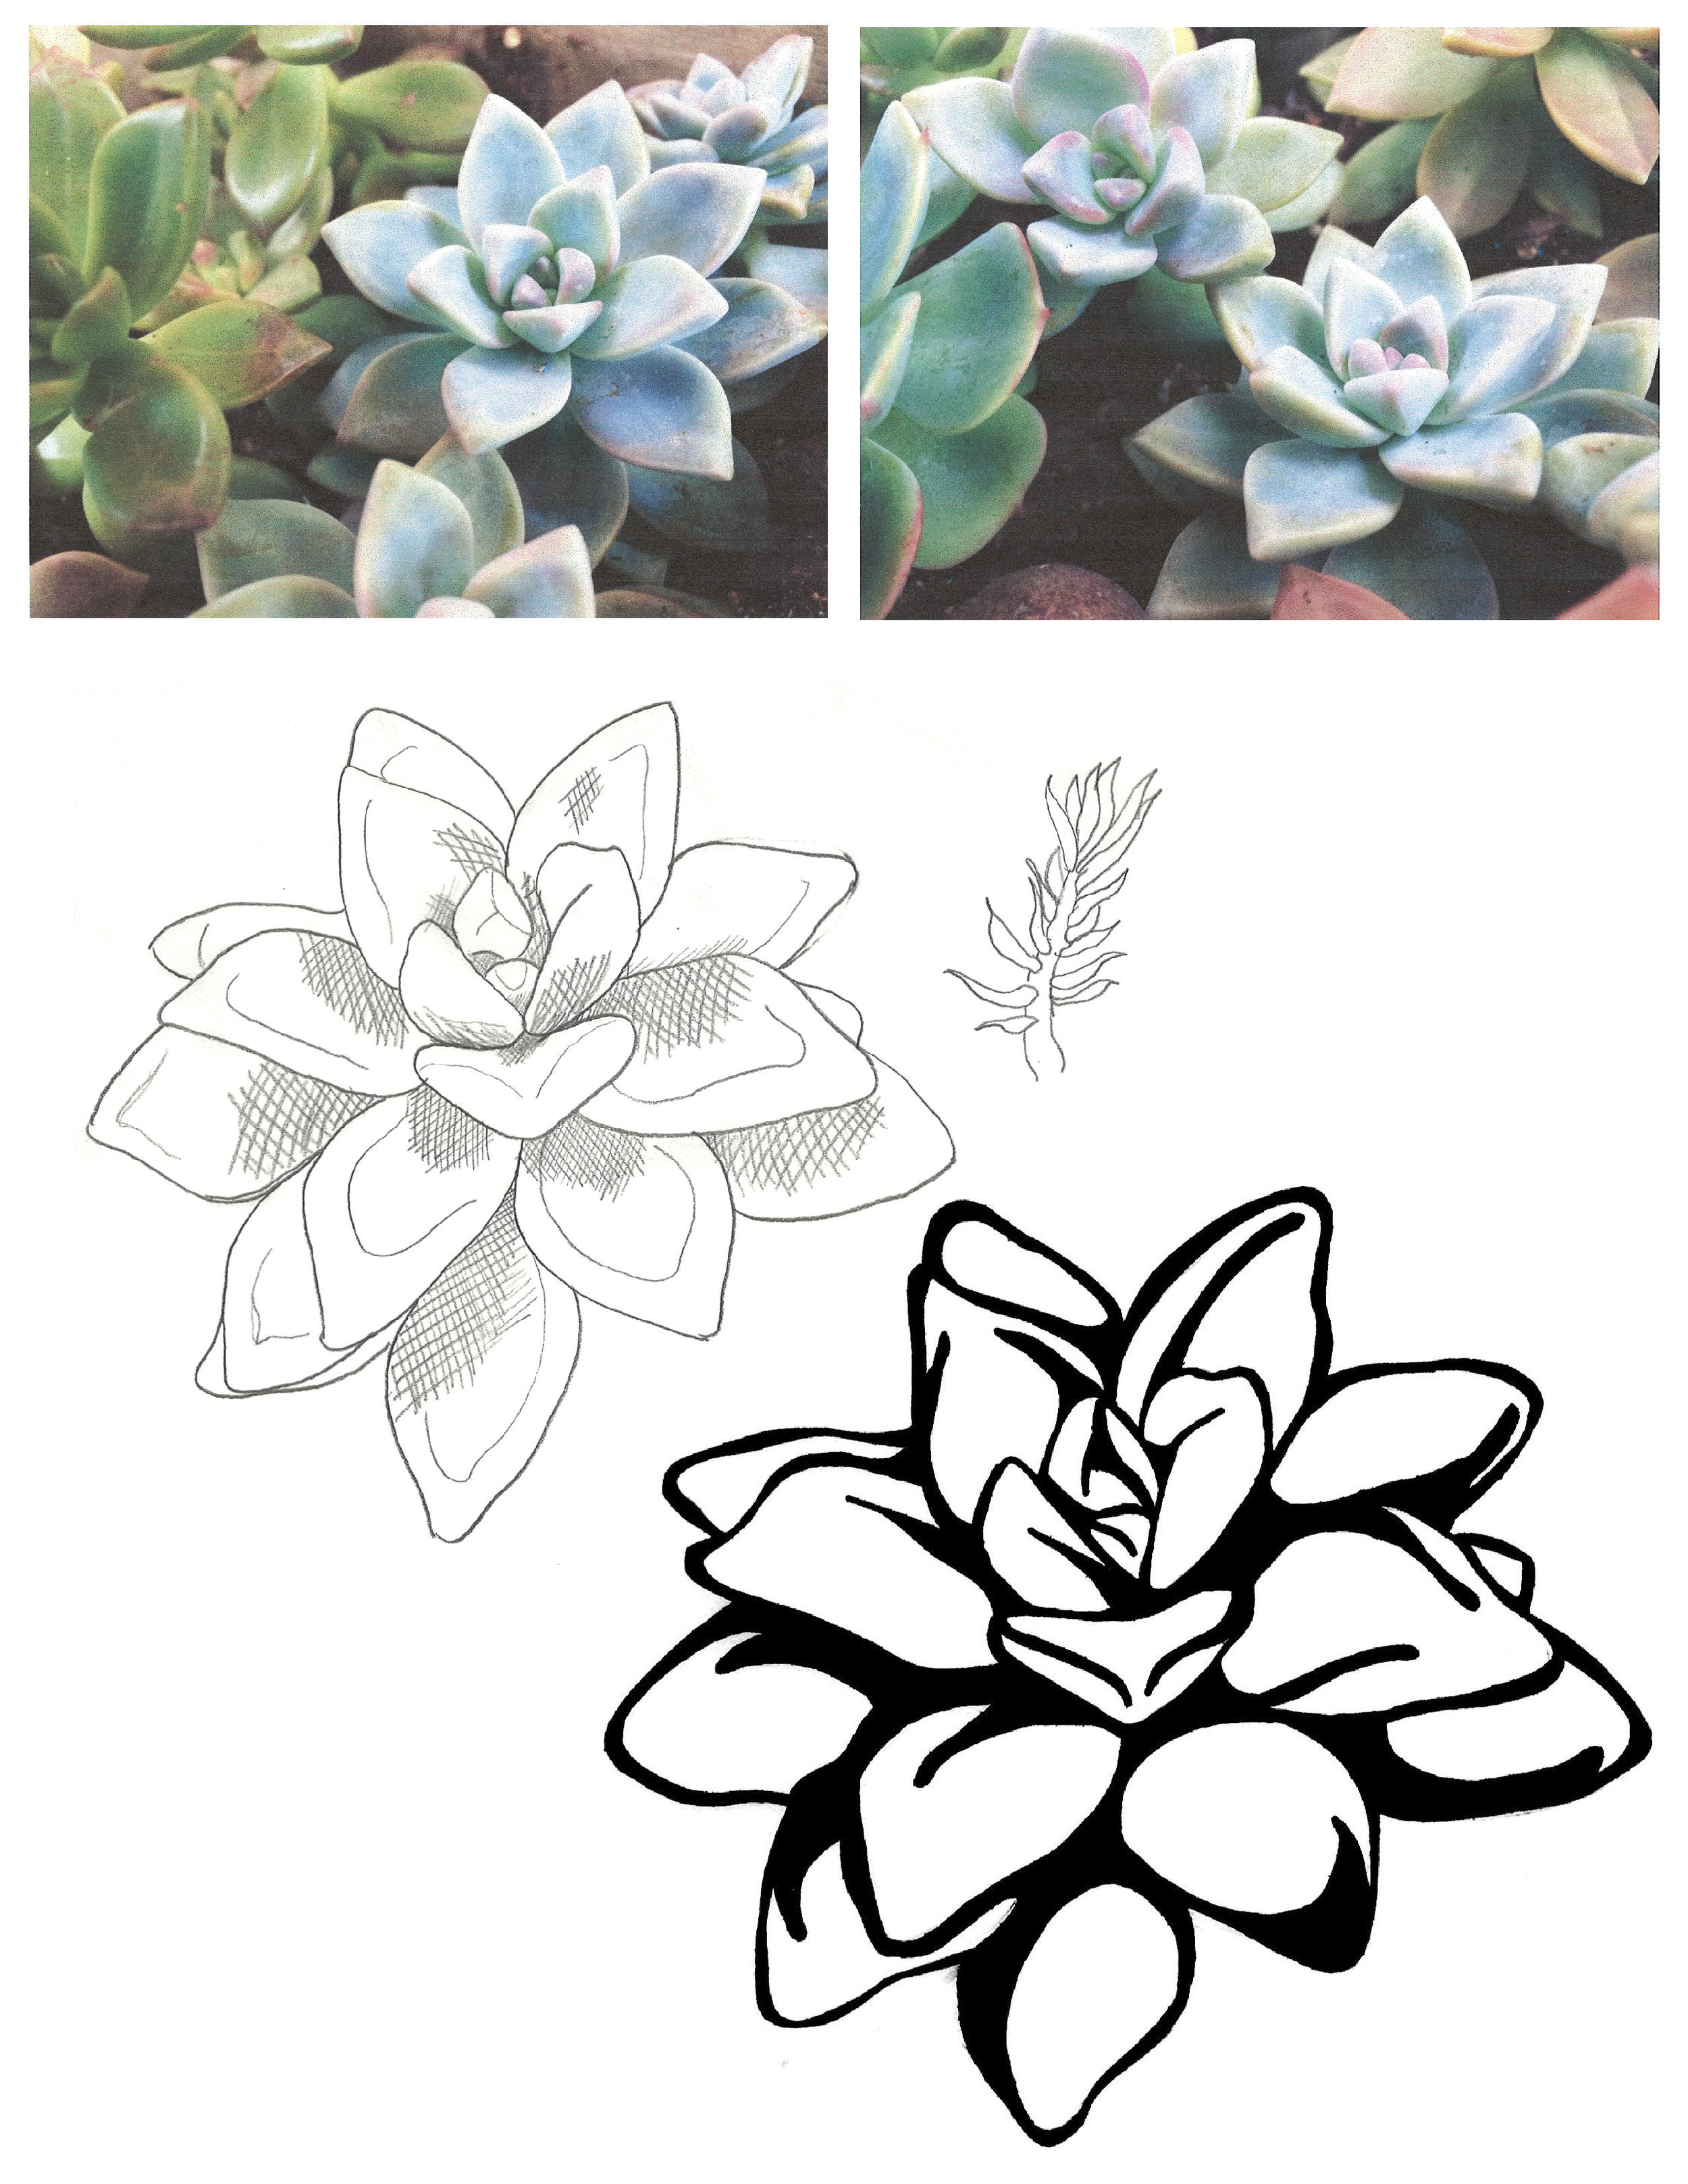 Inspiration Photos and Sketches   Some of the inspiration photos taken from Mindee's succulents for this concept. Also pictured an initial sketch and the final drawing that was then rendered in Illustrator as a vector graphic. ˙